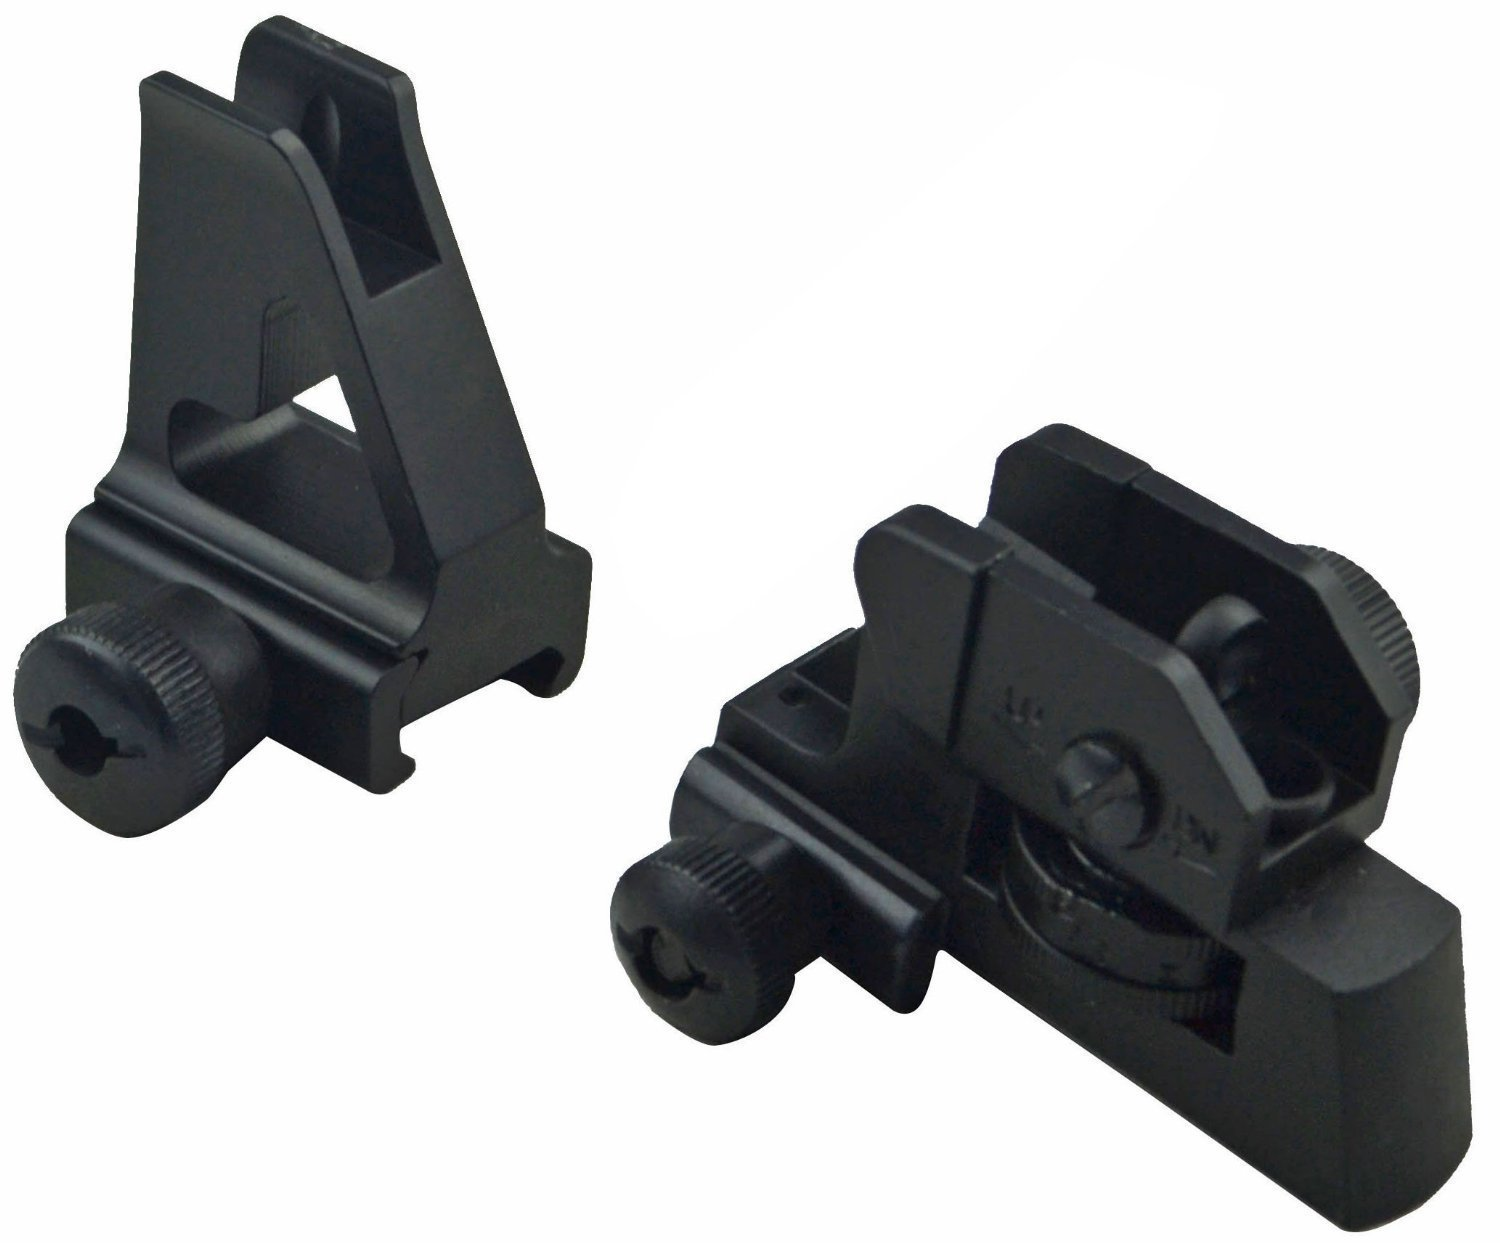 MUDCAT Outdoors Iron Sights Match Grade Model 4/15 Rear & High Profile Front Sight Gas Block, DPMS Oracle by GBO (Image #1)